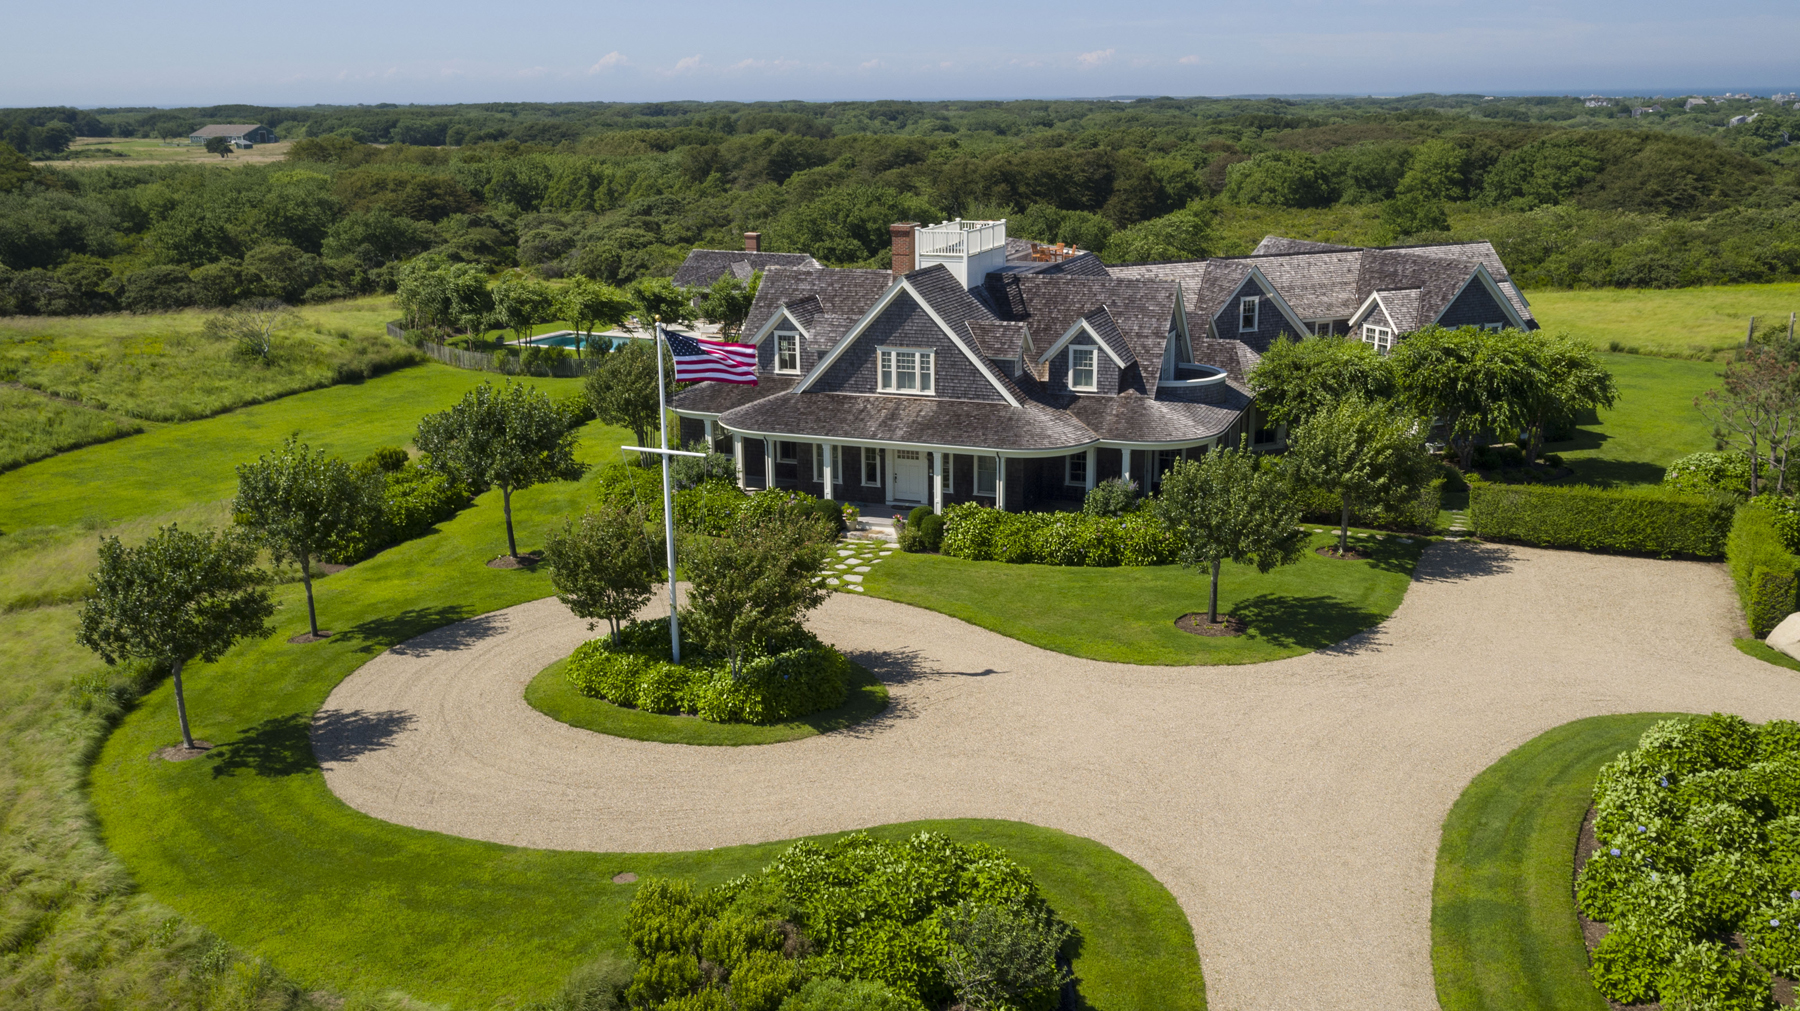 Casa Unifamiliar por un Venta en Private Estate Over 14 Acres 30R Quidnet Rd Nantucket, Massachusetts 02554 Estados Unidos